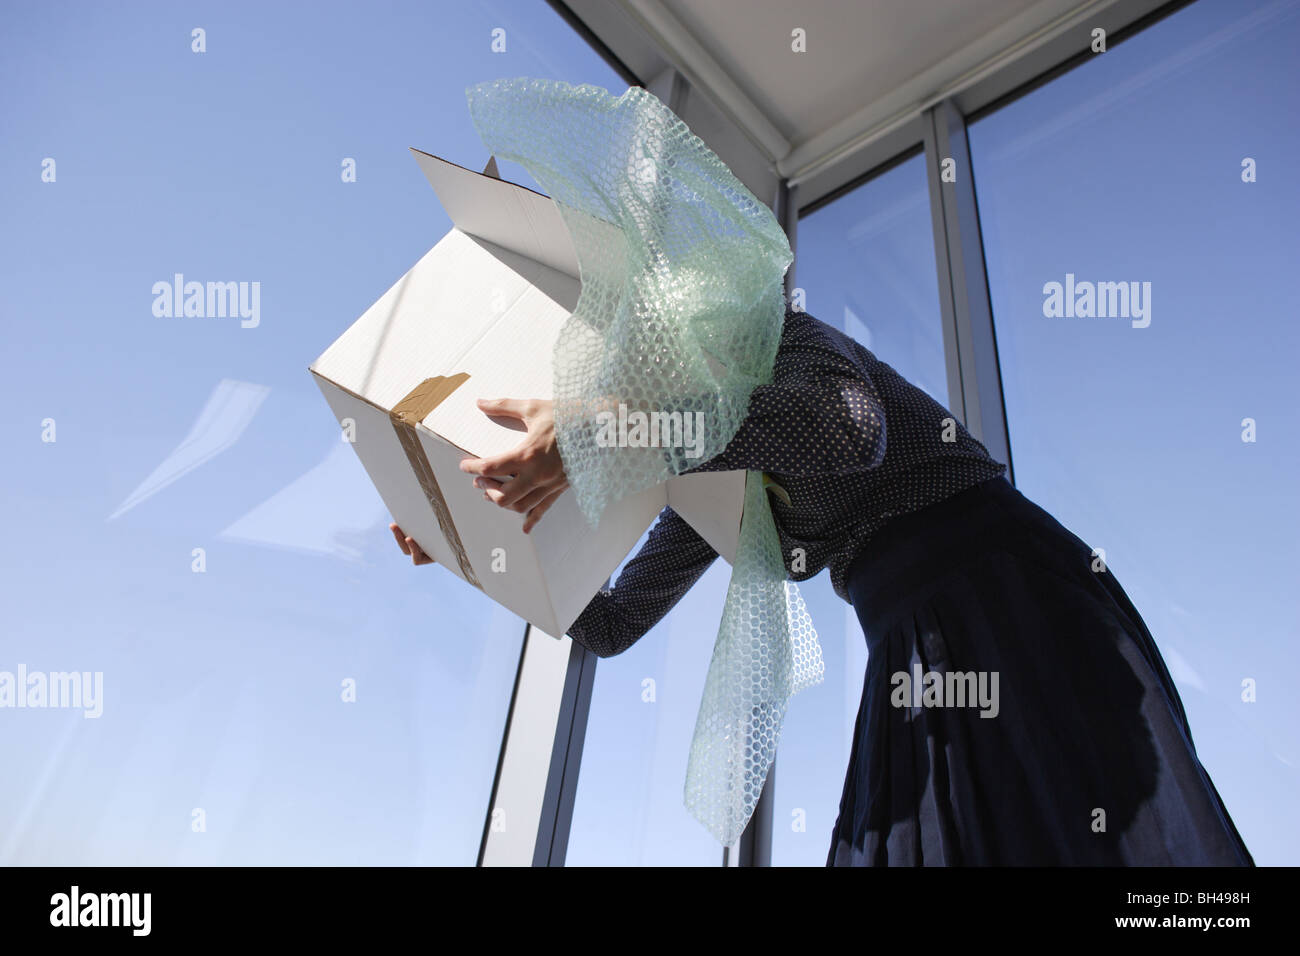 A woman's head buried deep inside a box full of bubble wrap in an office - Stock Image